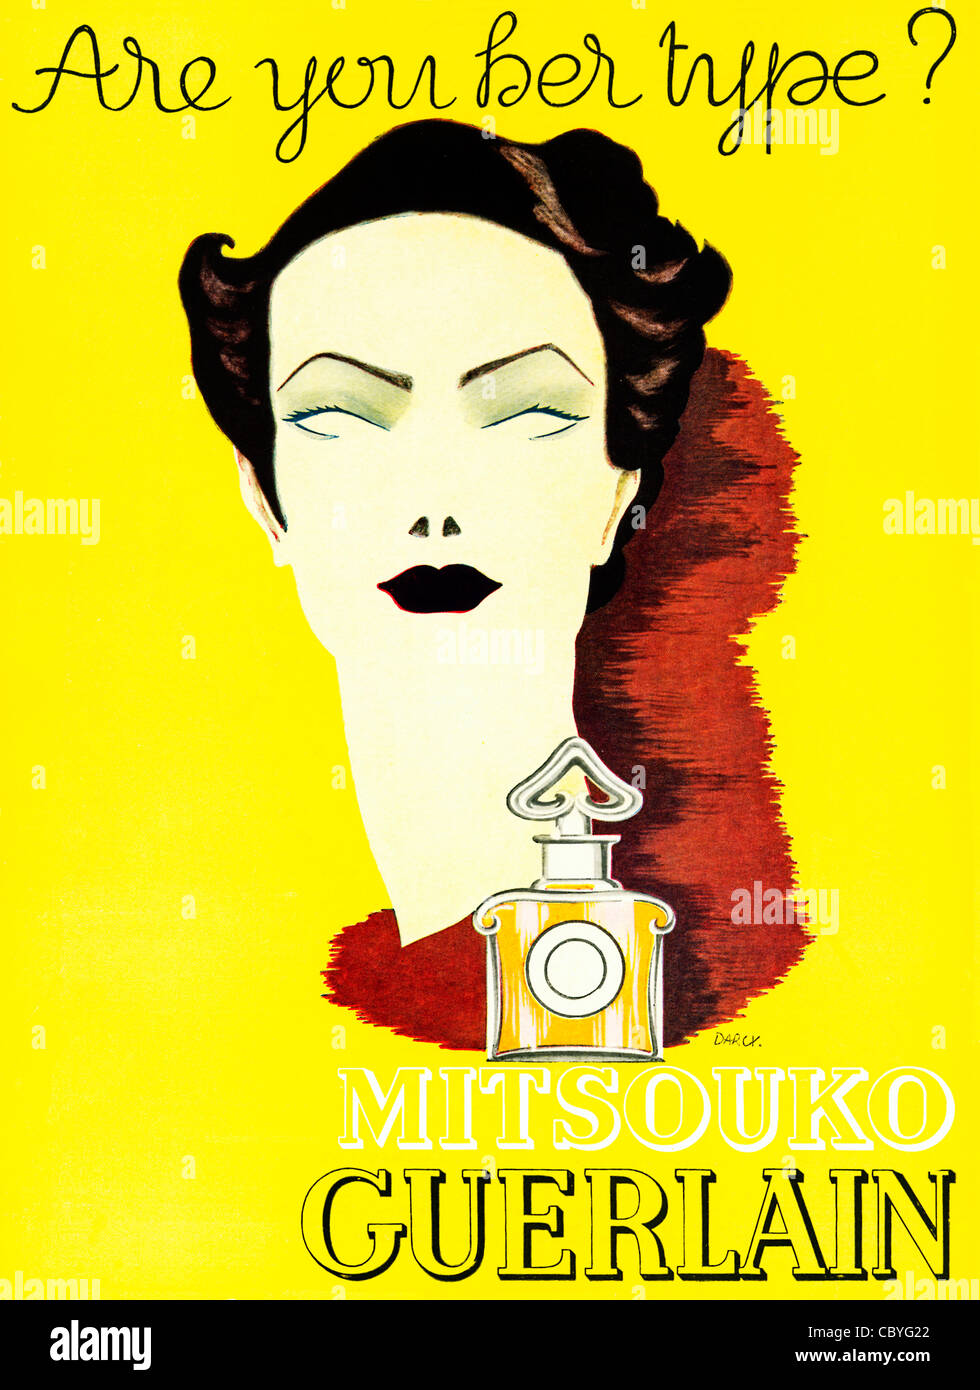 Mitsouko Guerlain, 1938 advert in an English magazine for the classic French perfume, Are You Her Type - Stock Image